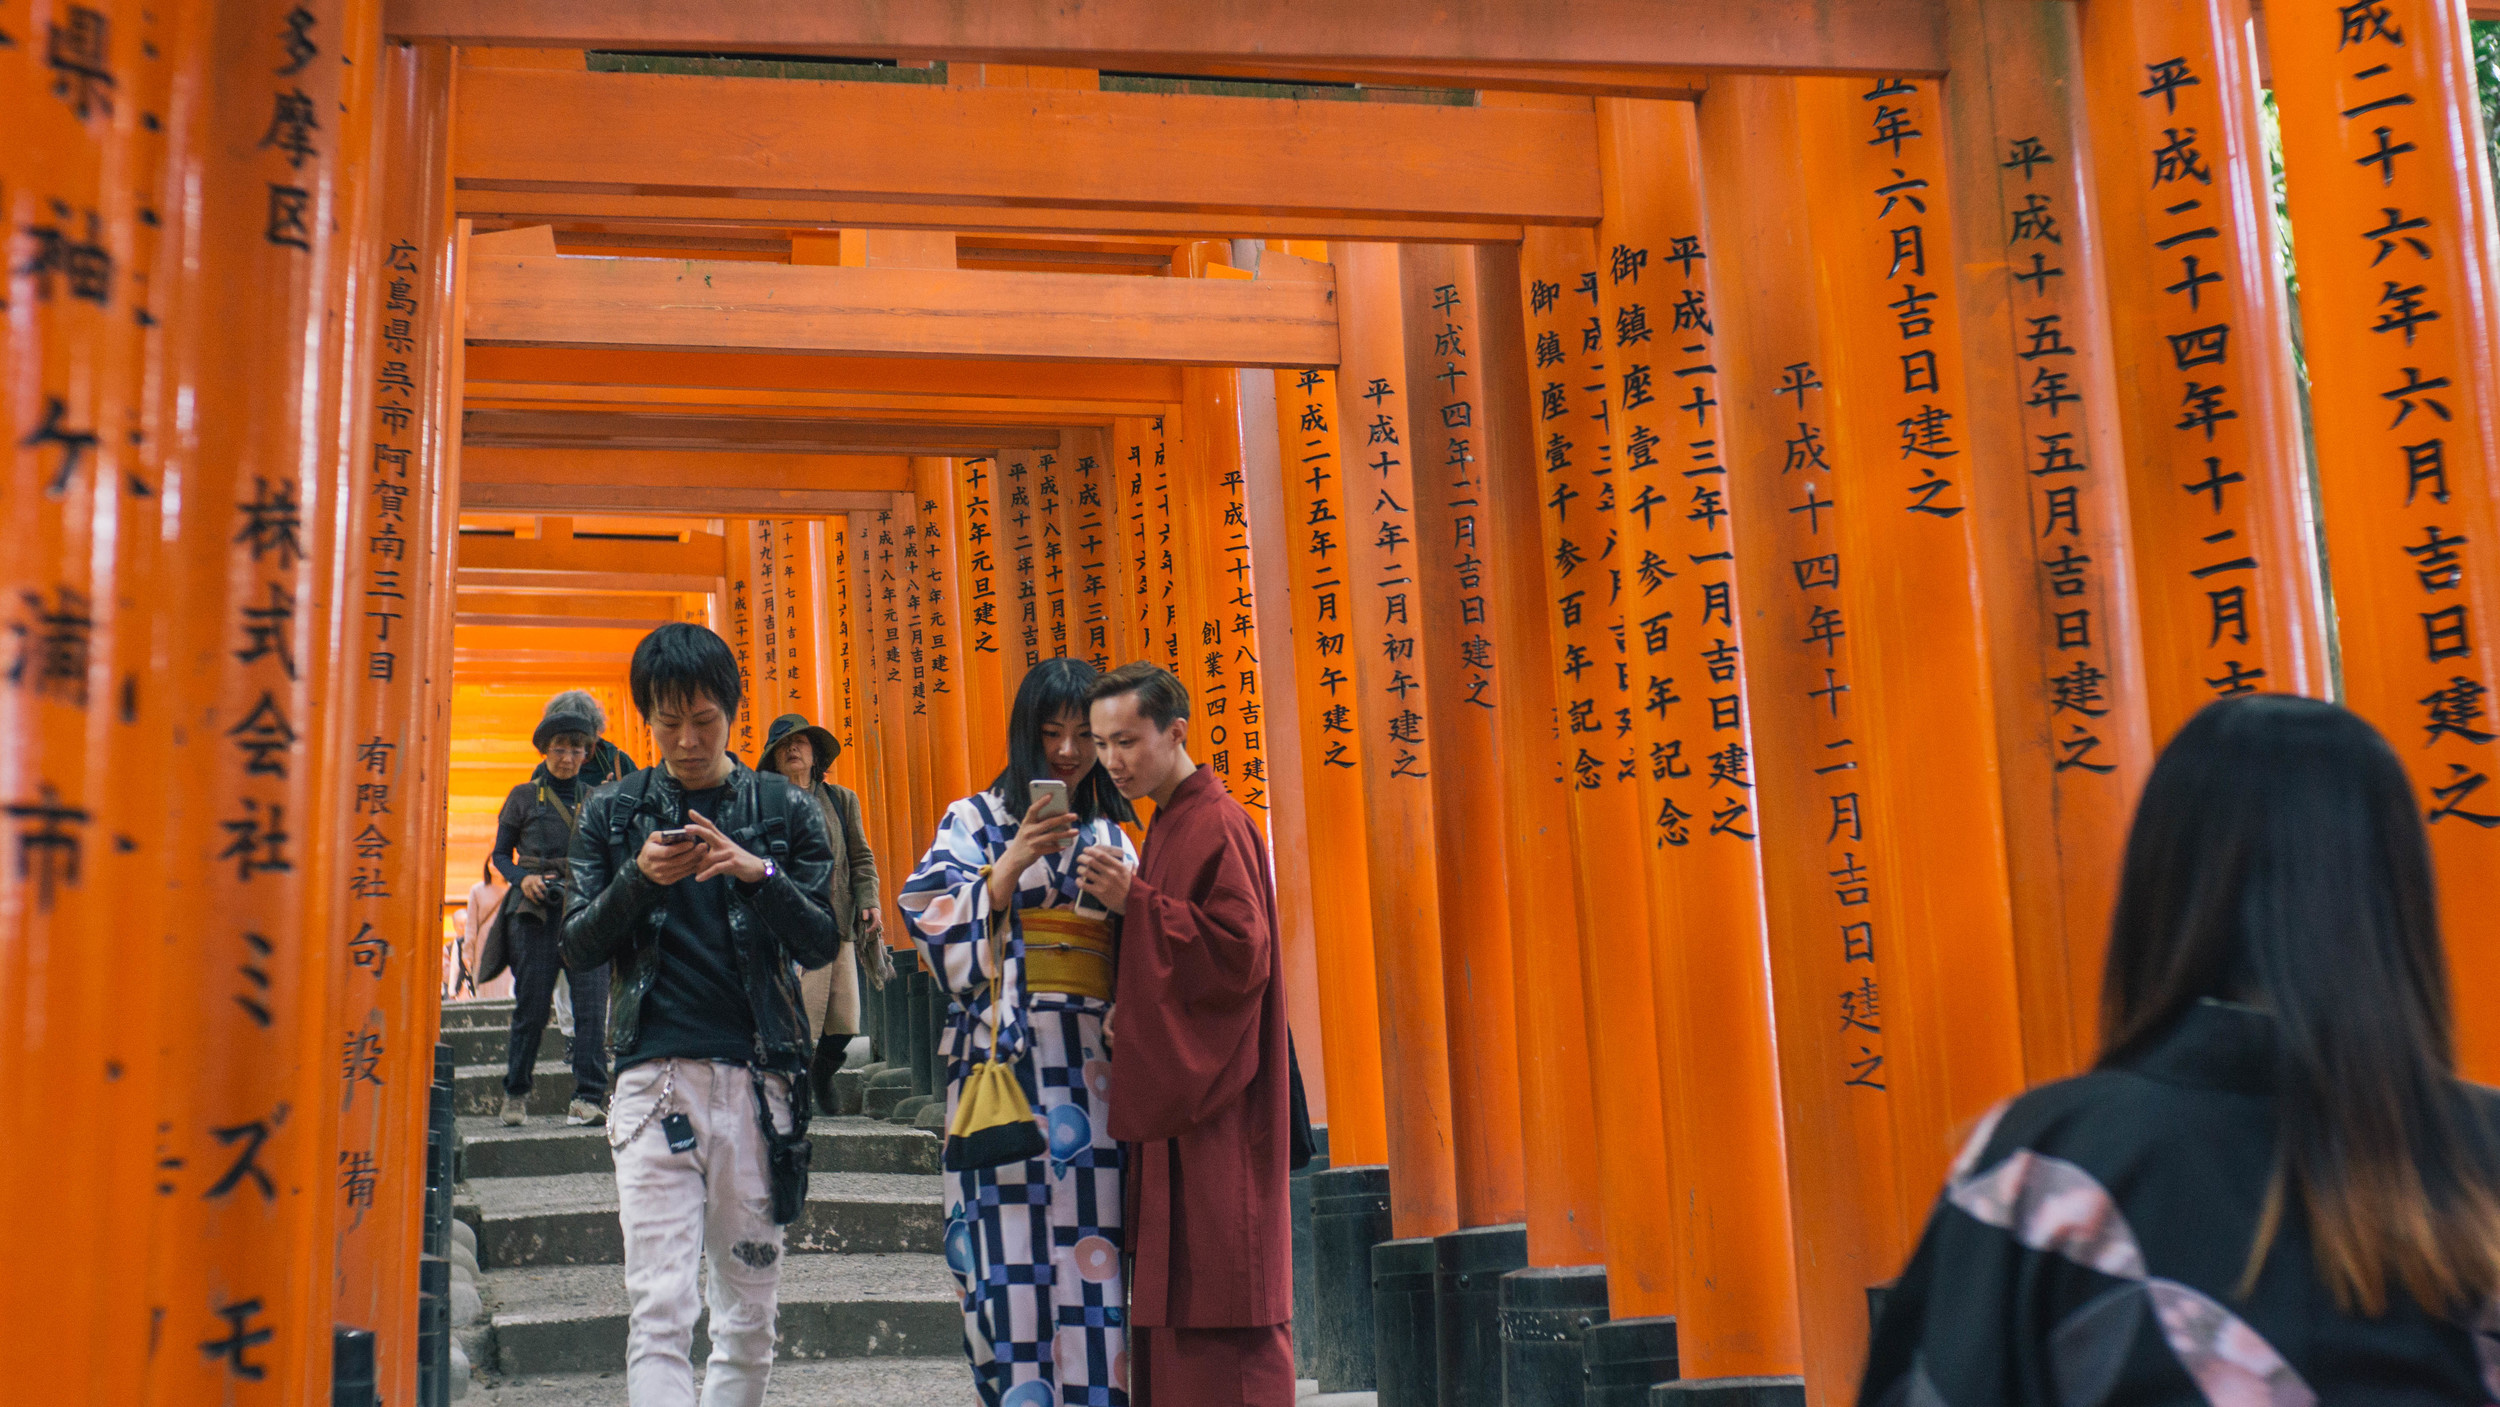 The torii path leading to another shrine. It's always funny to see the cross between old traditions and new technology, especially in the young folks in Japan.